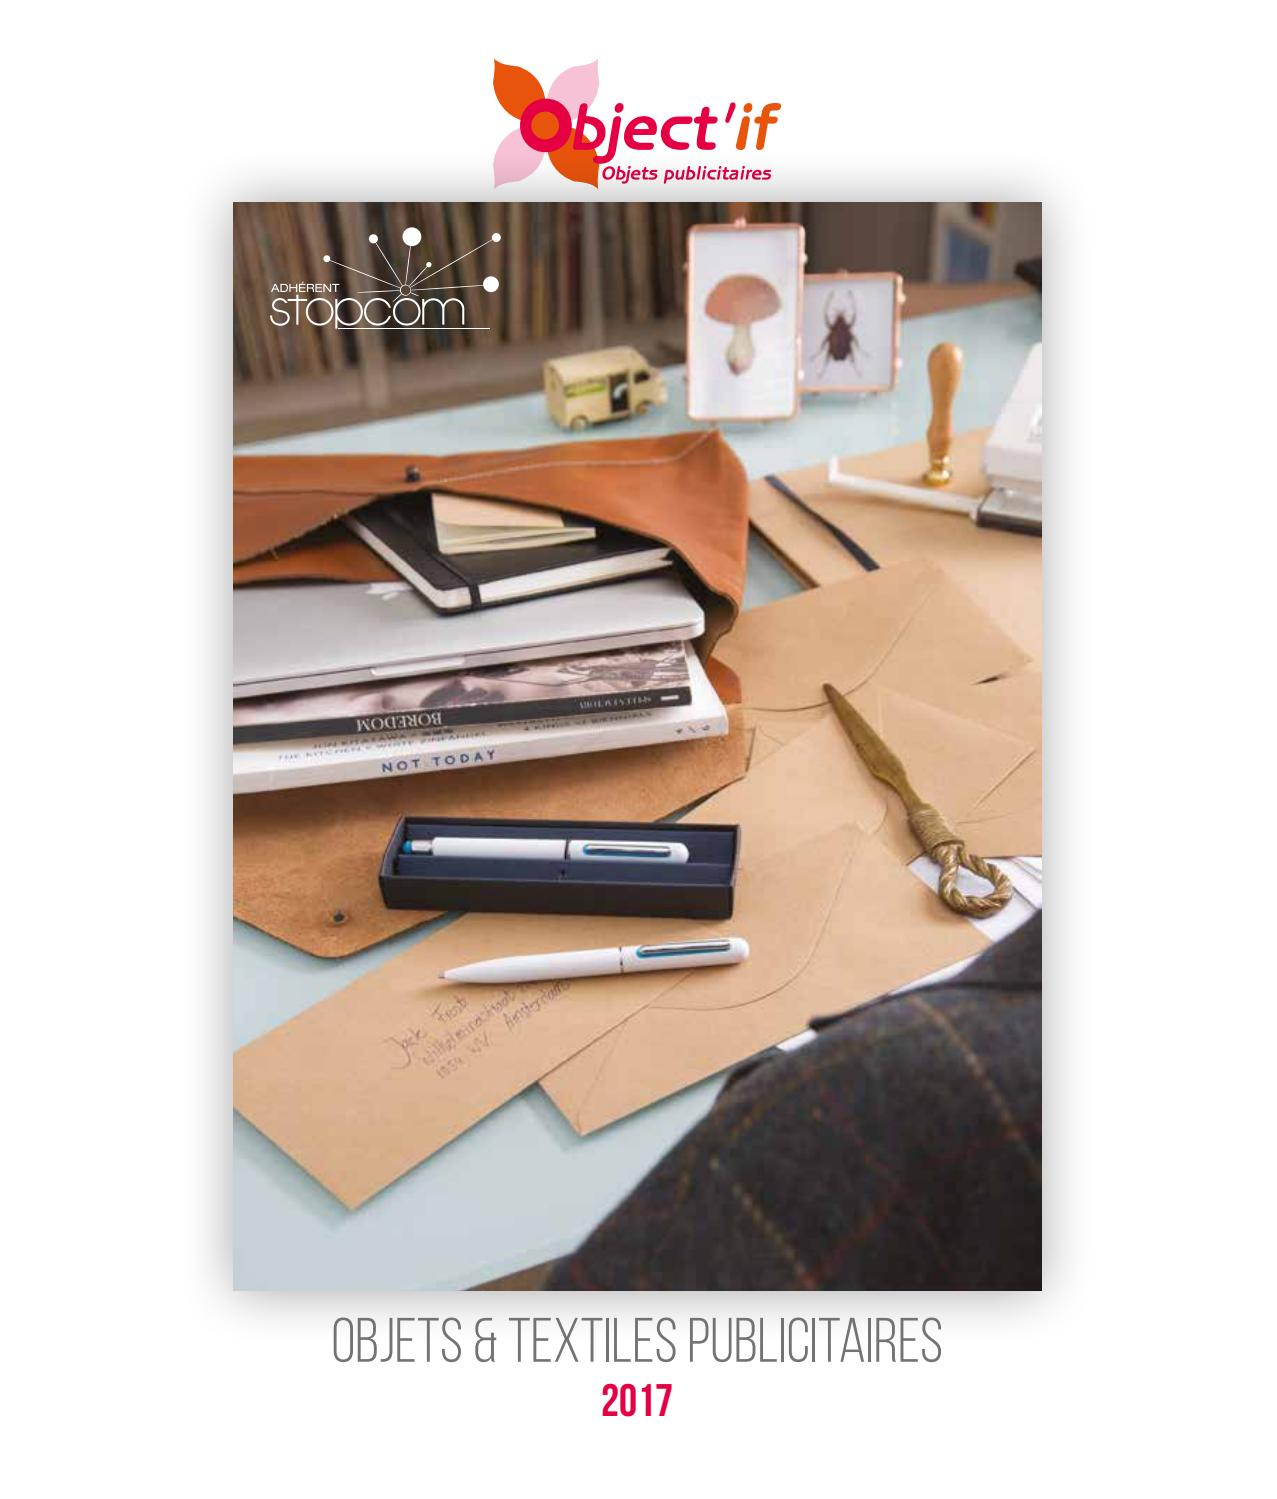 Object if catalogue 2017 objets   textiles publicitaires by Objectif  Goodies - issuu 4c25166389a